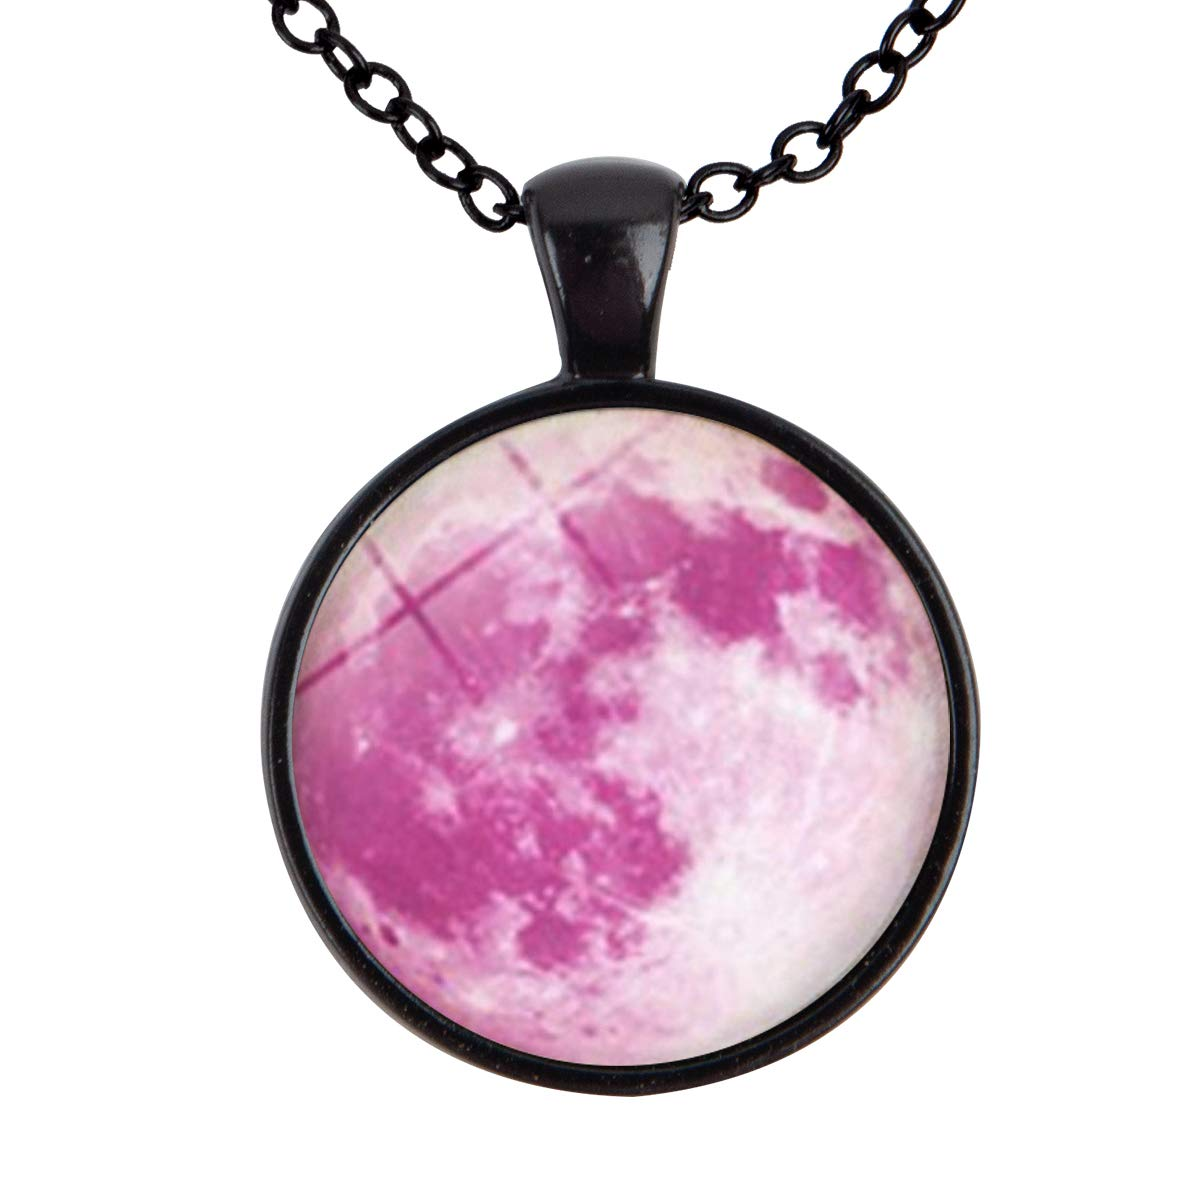 Lightrain Galaxy Planet Pink Moon Photo Pendant Necklace Vintage Bronze Chain Statement Necklace Handmade Jewelry Gifts